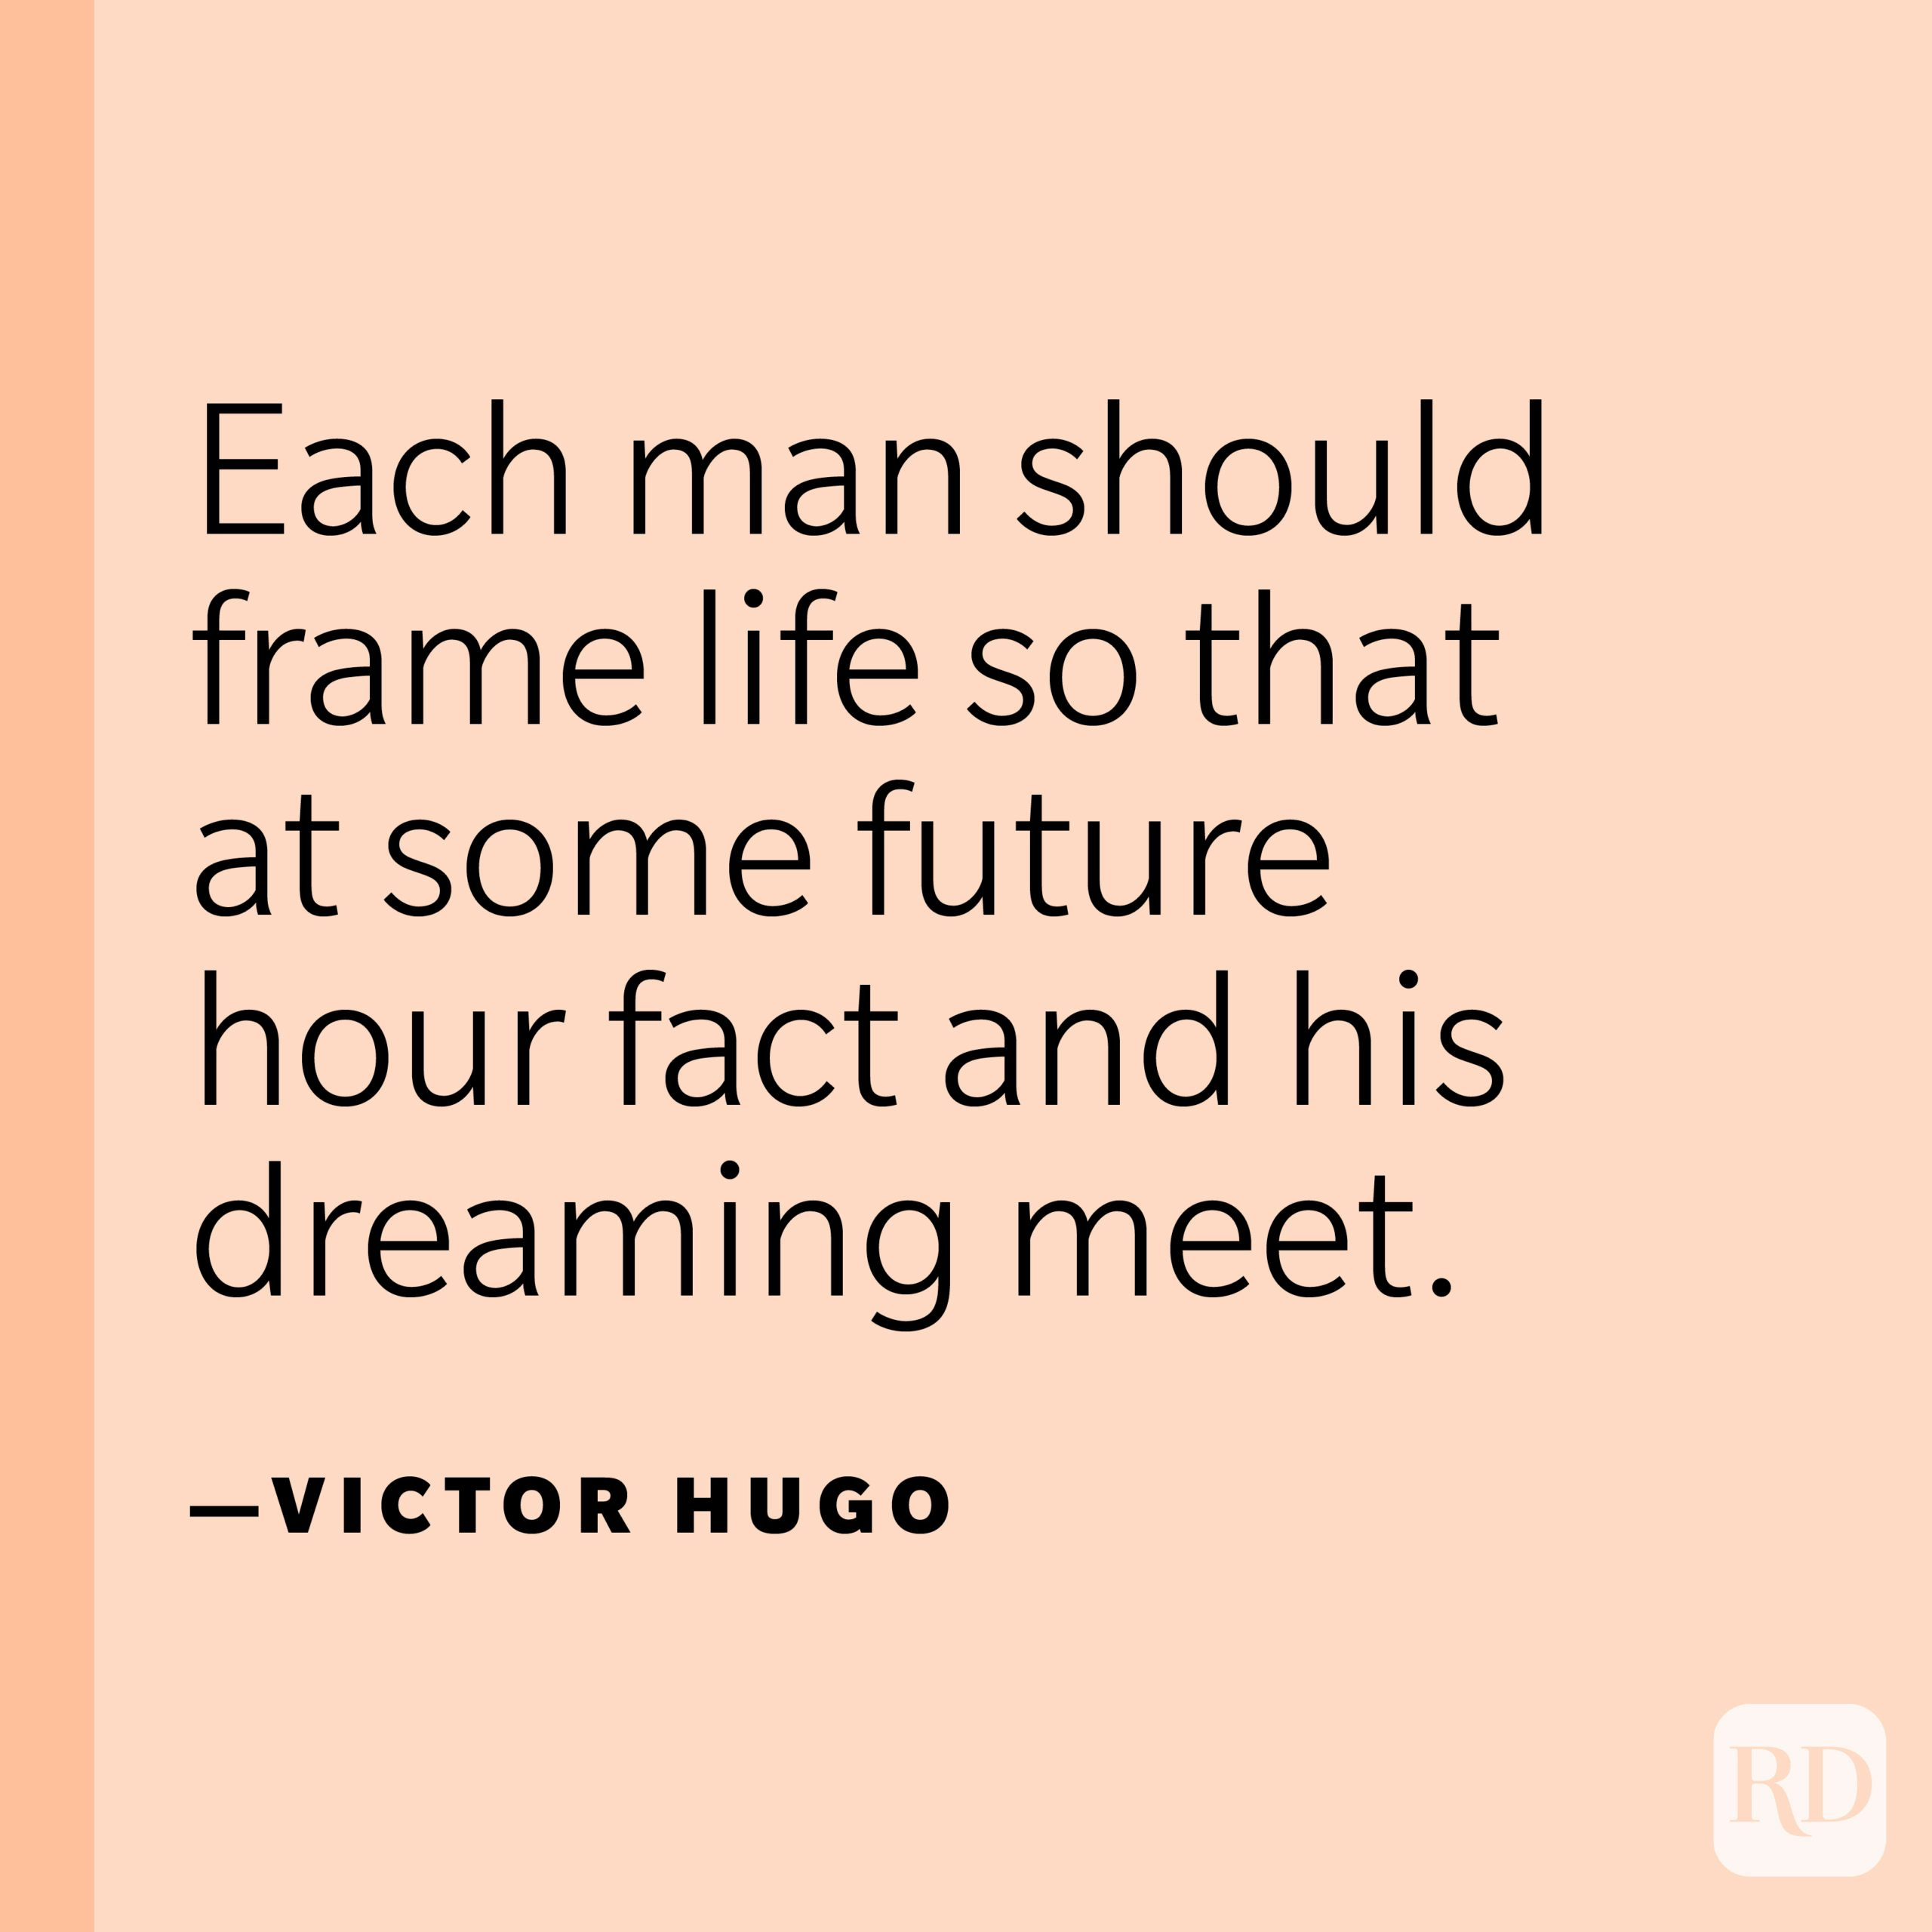 """""""Each man should frame life so that at some future hour fact and his dreaming meet.""""—Victor Hugo"""